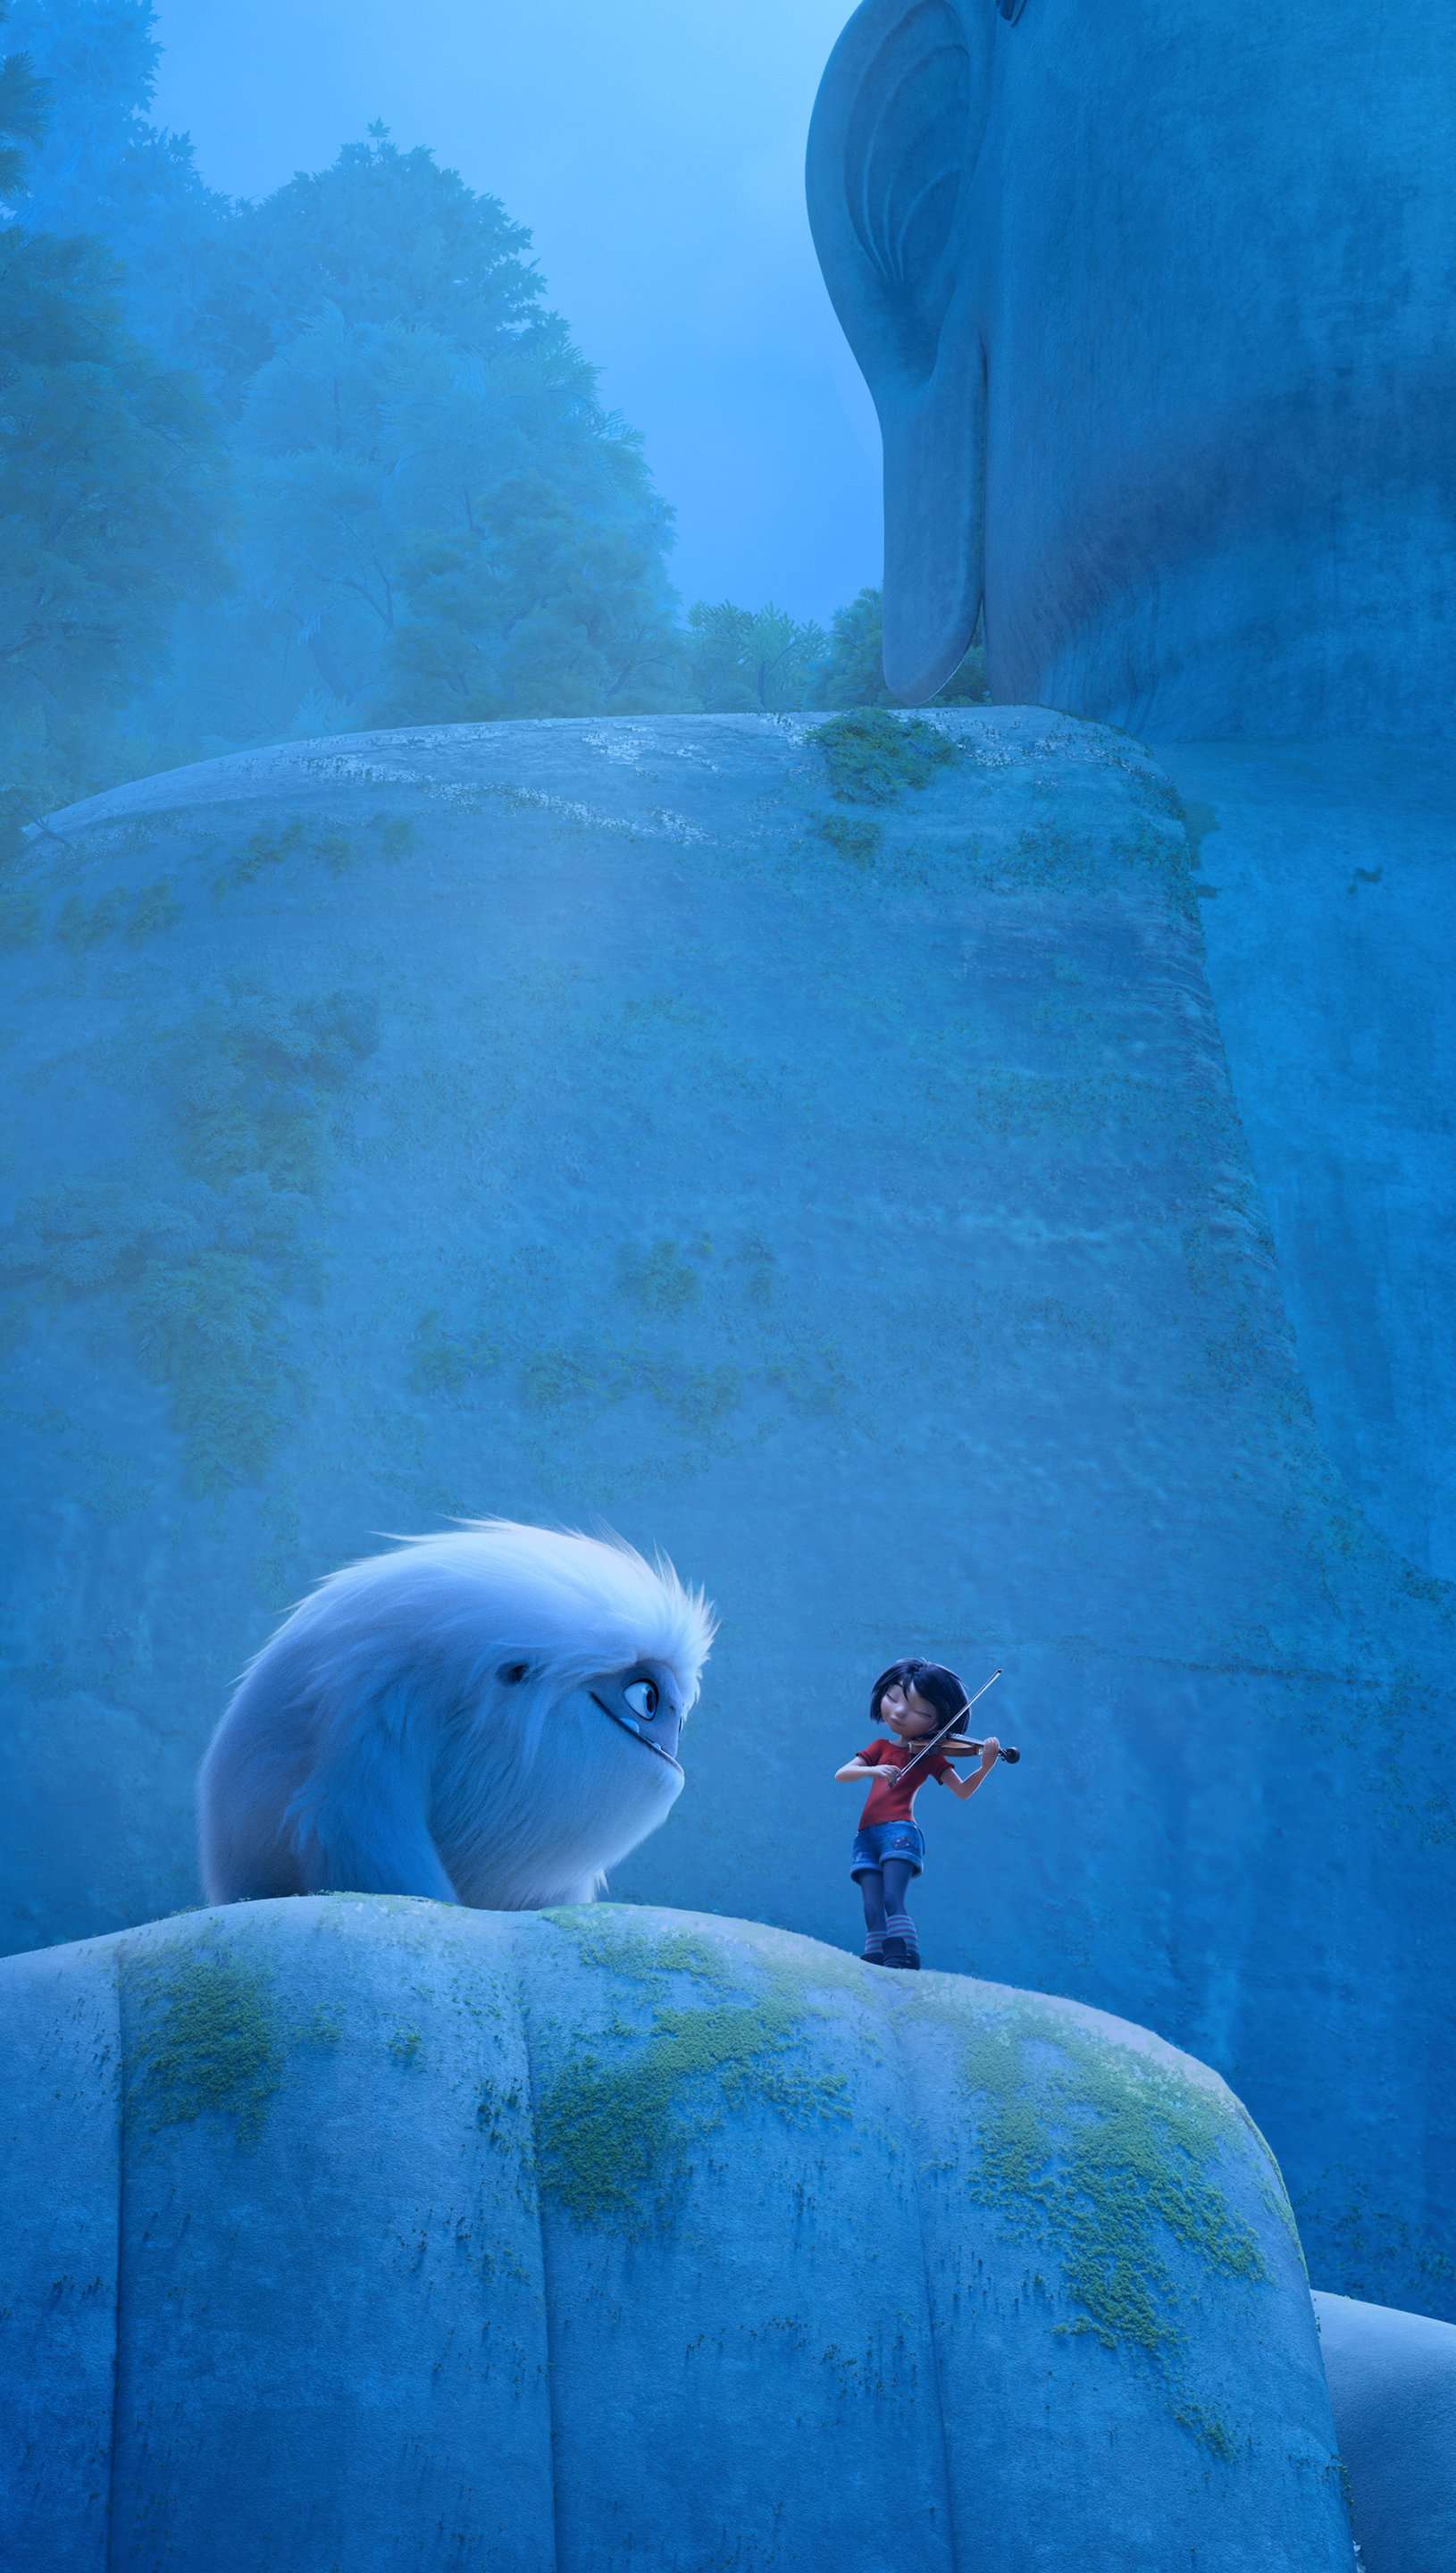 Wallpaper Abominable movie Vertical